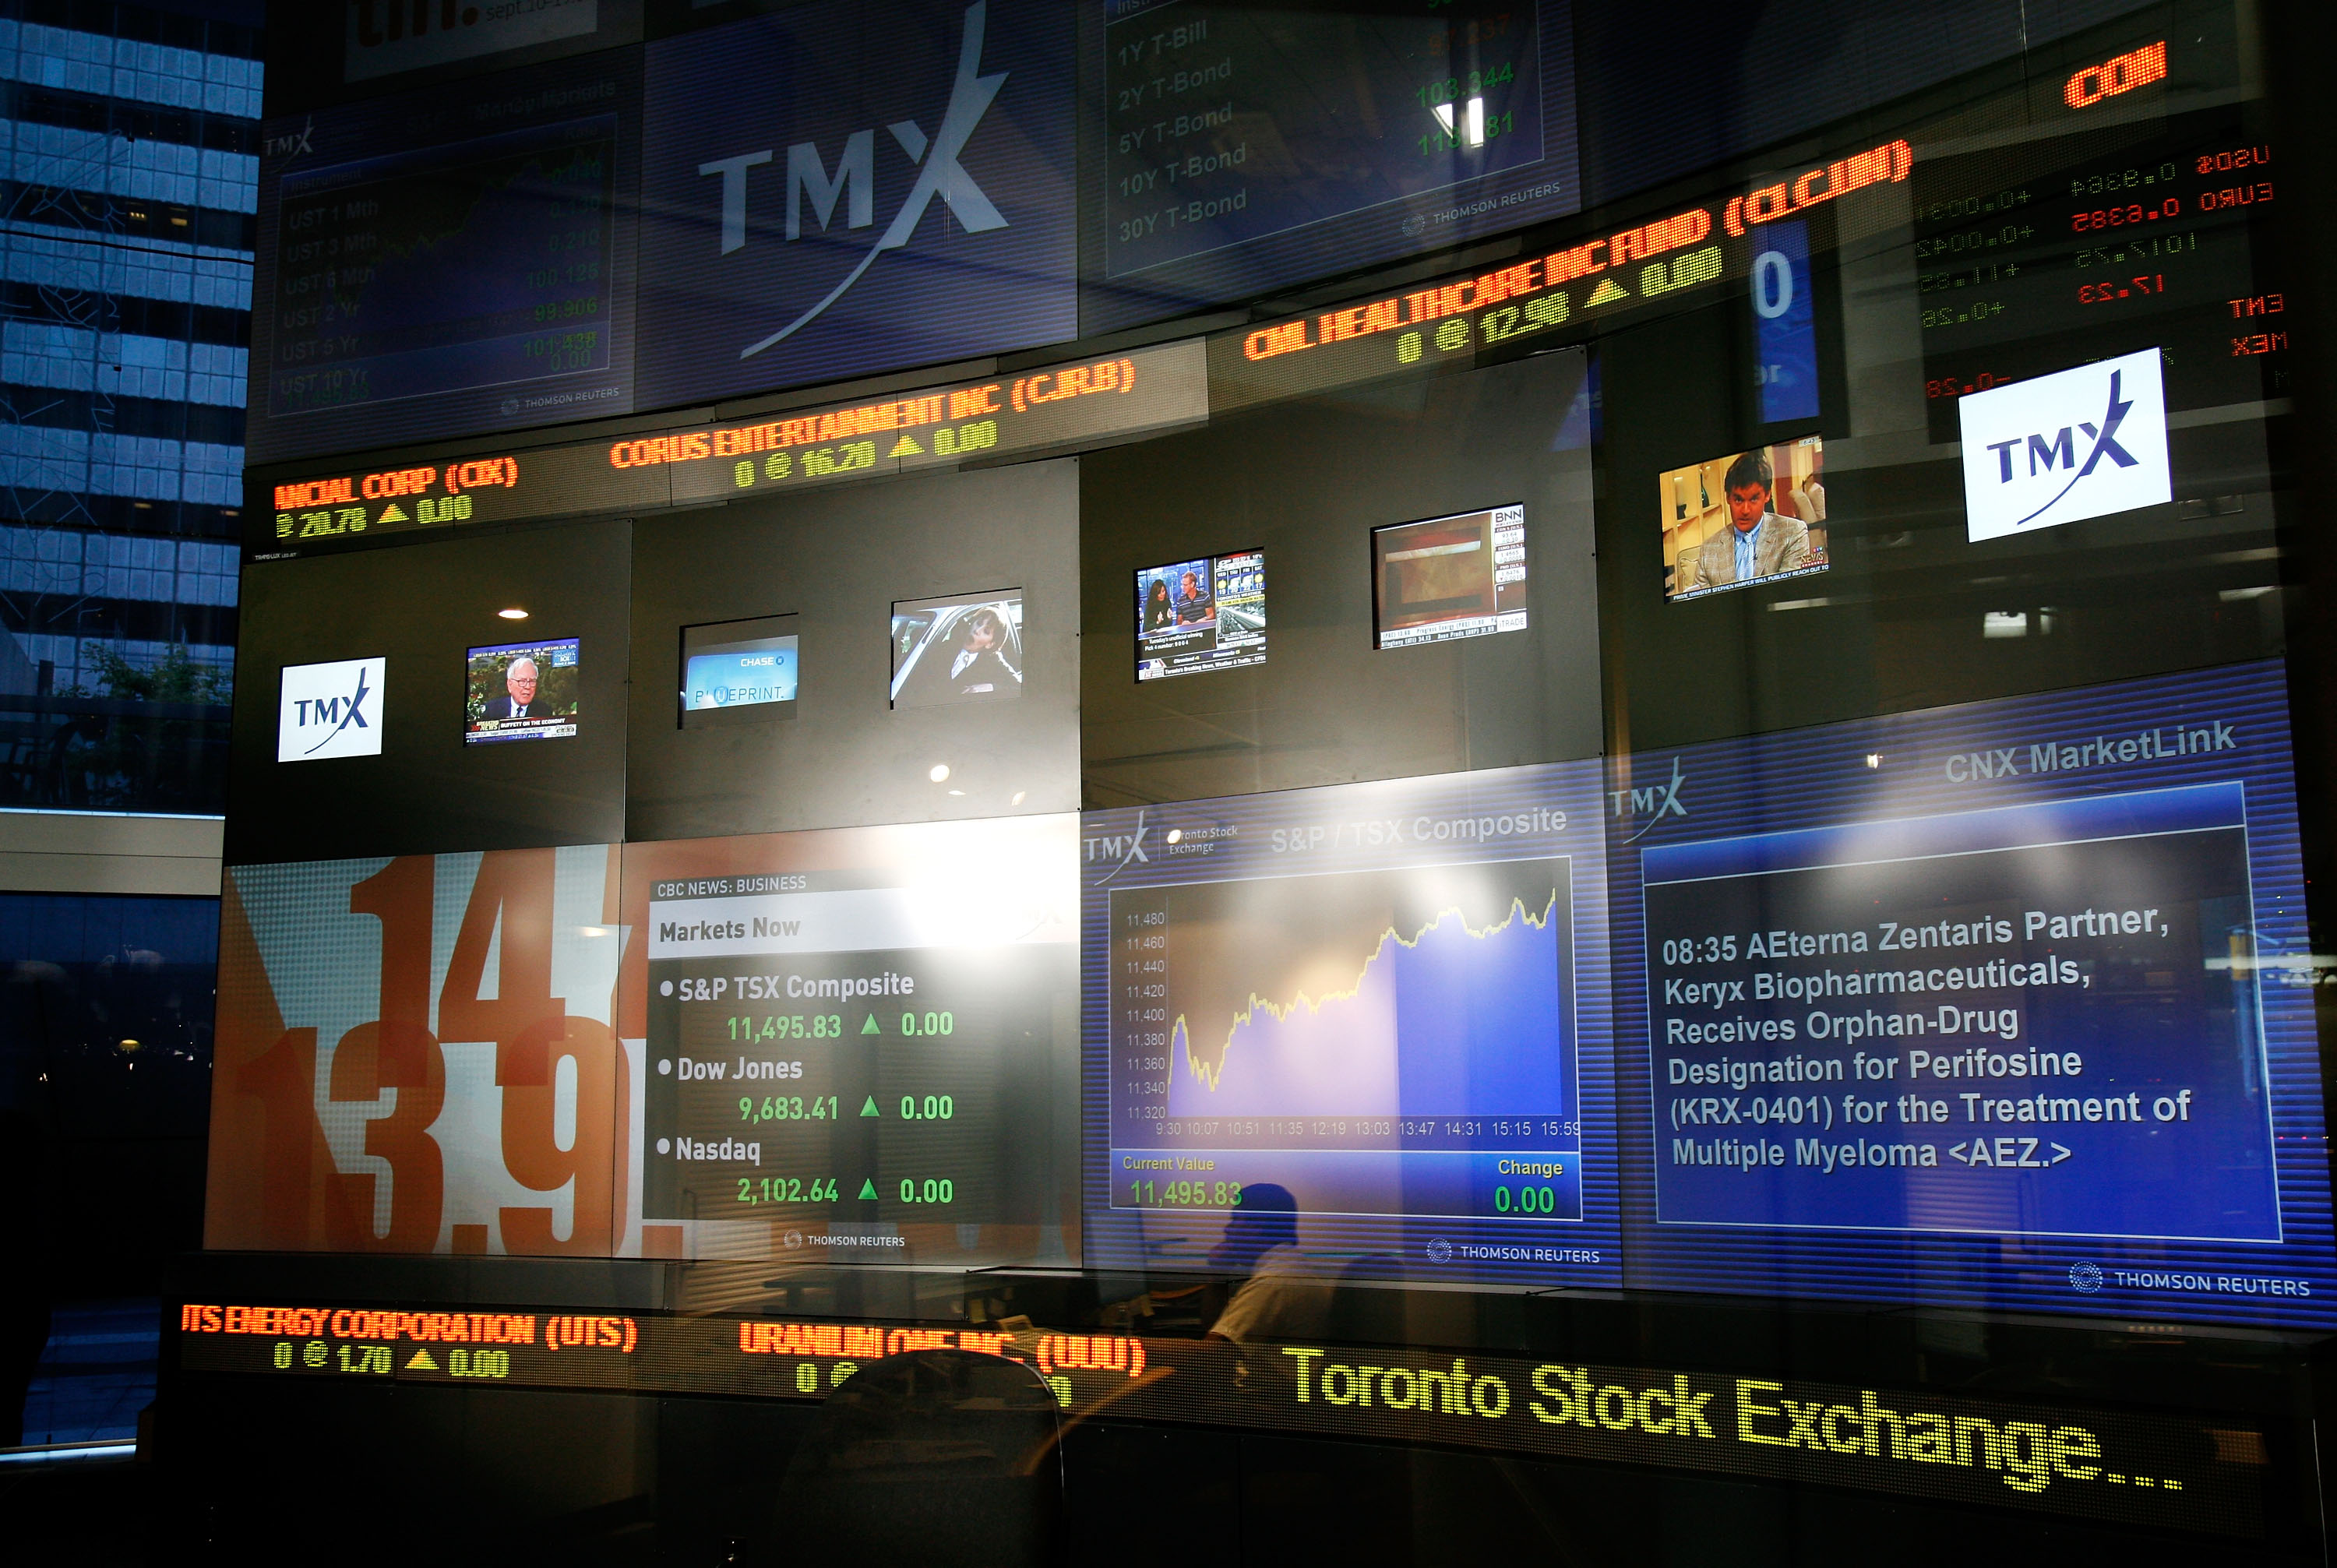 The Toronto Stock Exchange (Getty Images file photo)